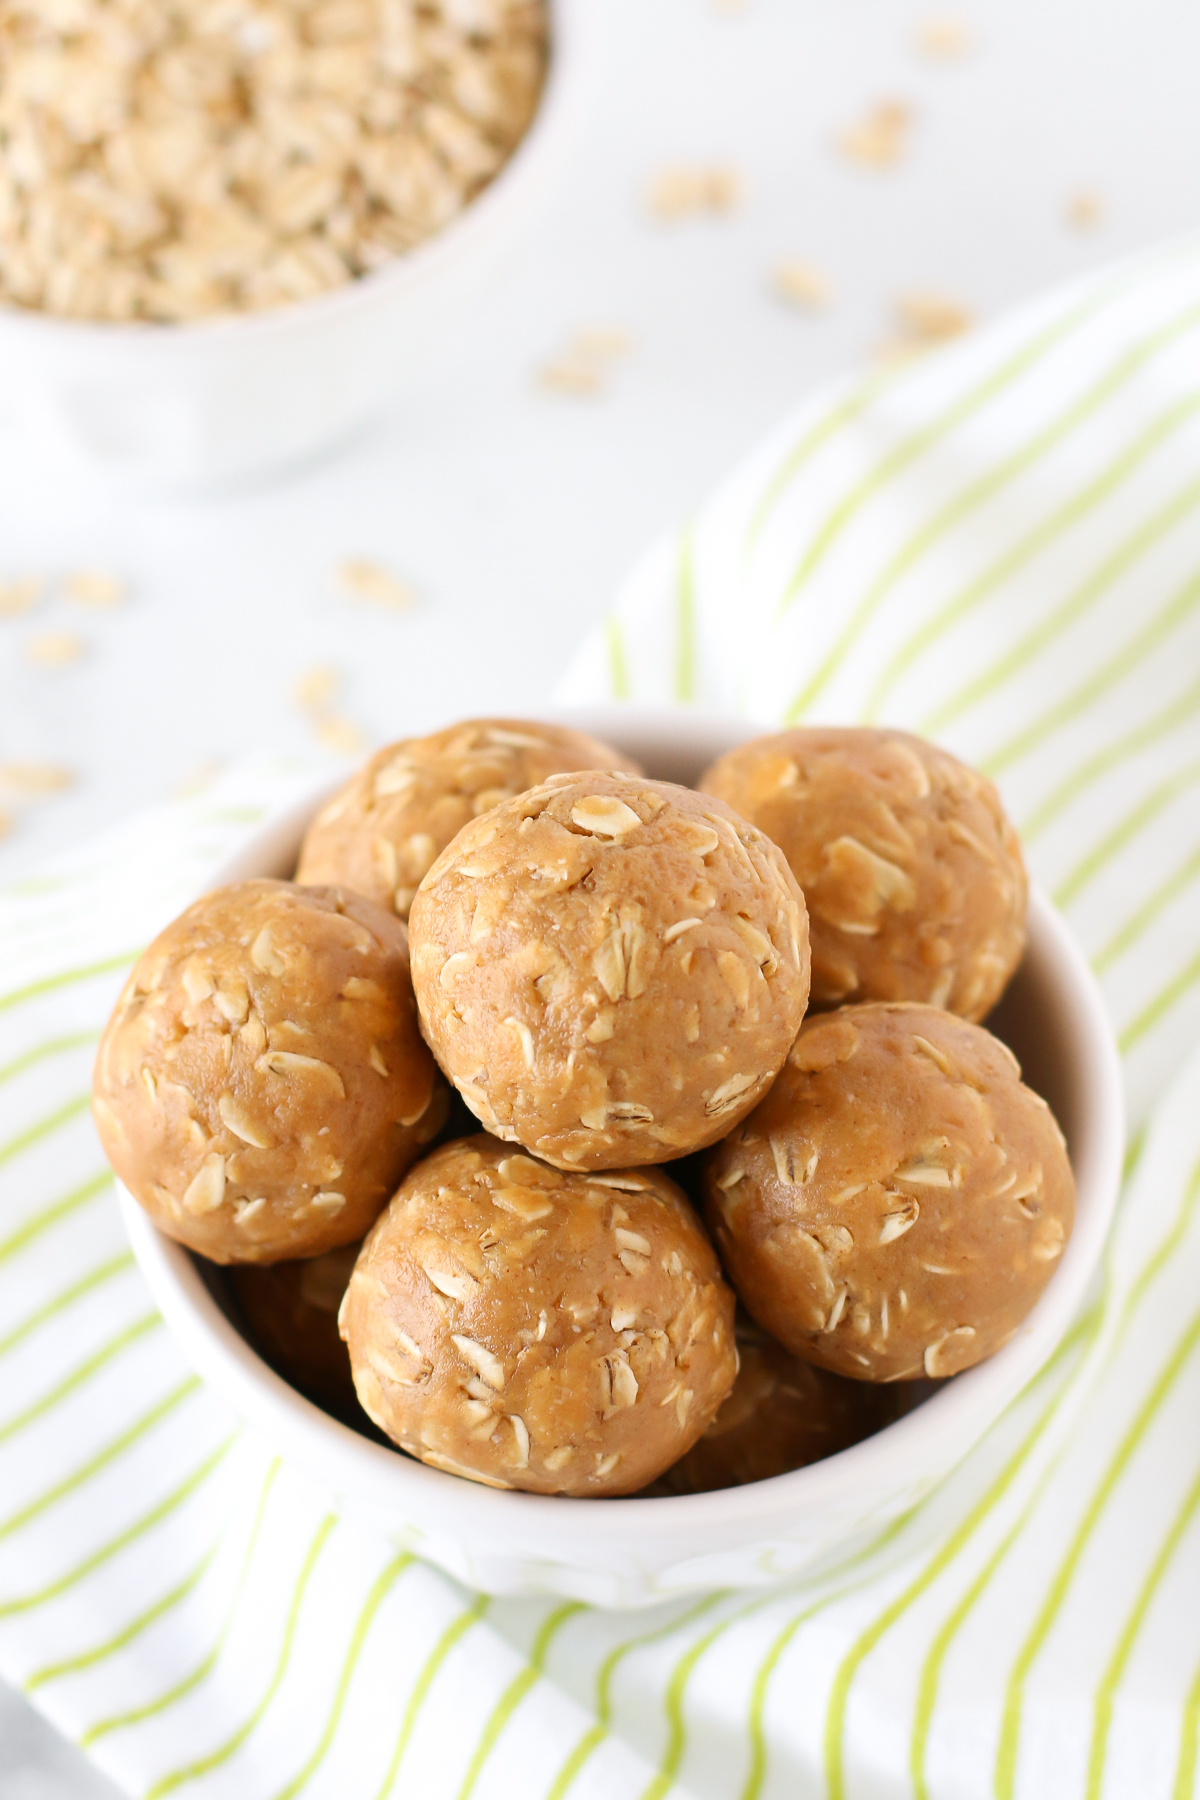 Peanut Butter Energy Bites. These little bites are made with just 4 ingredients. Easy-peasy!